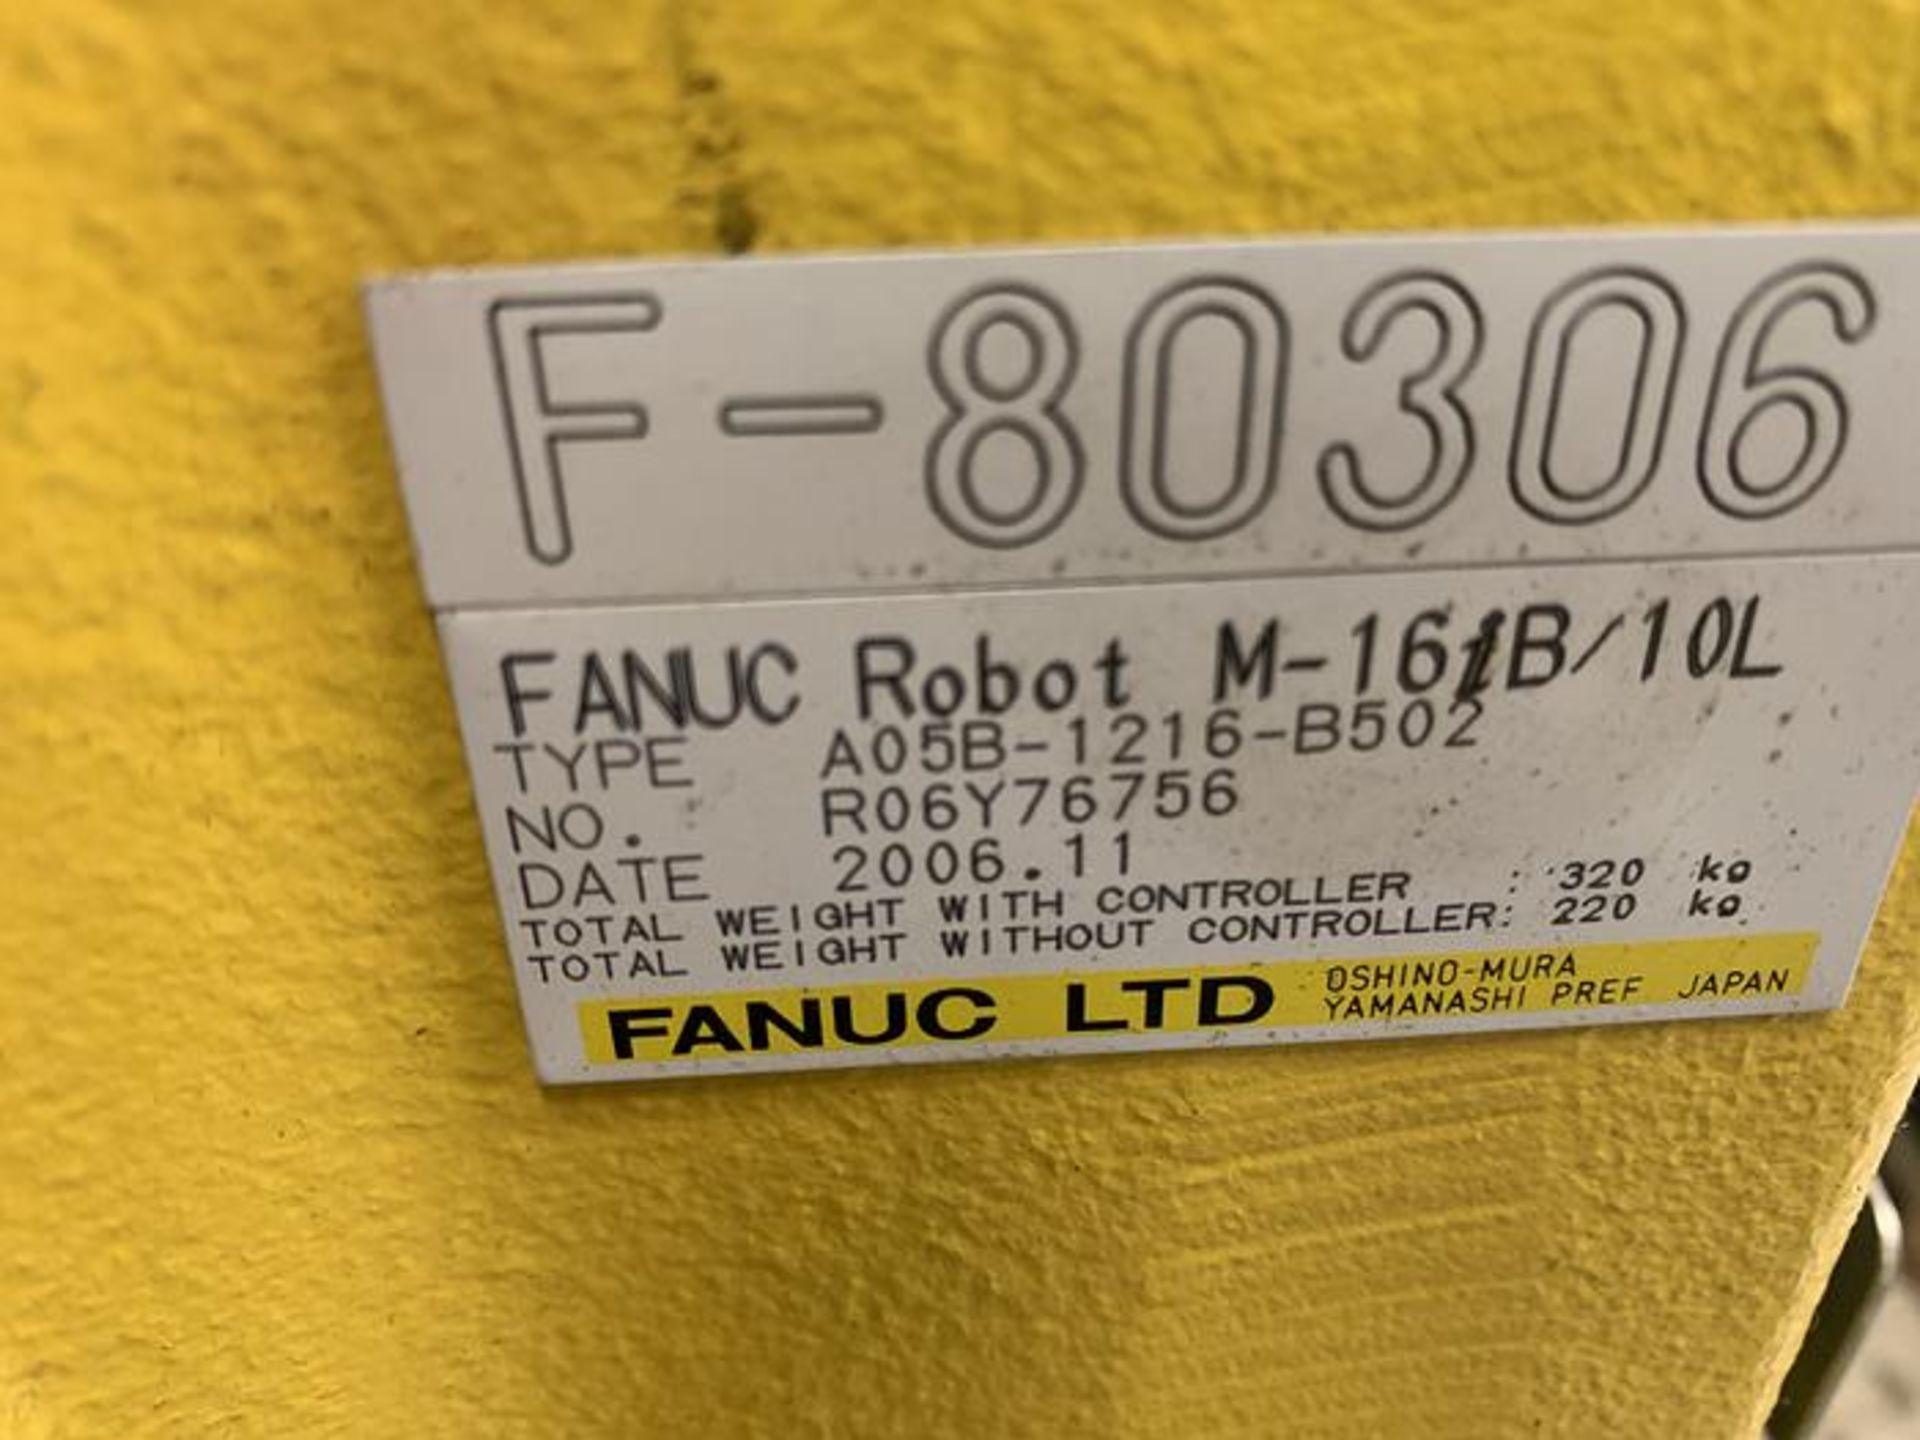 FANUC ROBOT M16iB/10L WITH RJ3iC (R30iA) CONTROLLER, TEACH & CABLES, YEAR 2006, SN 80306 - Image 17 of 17